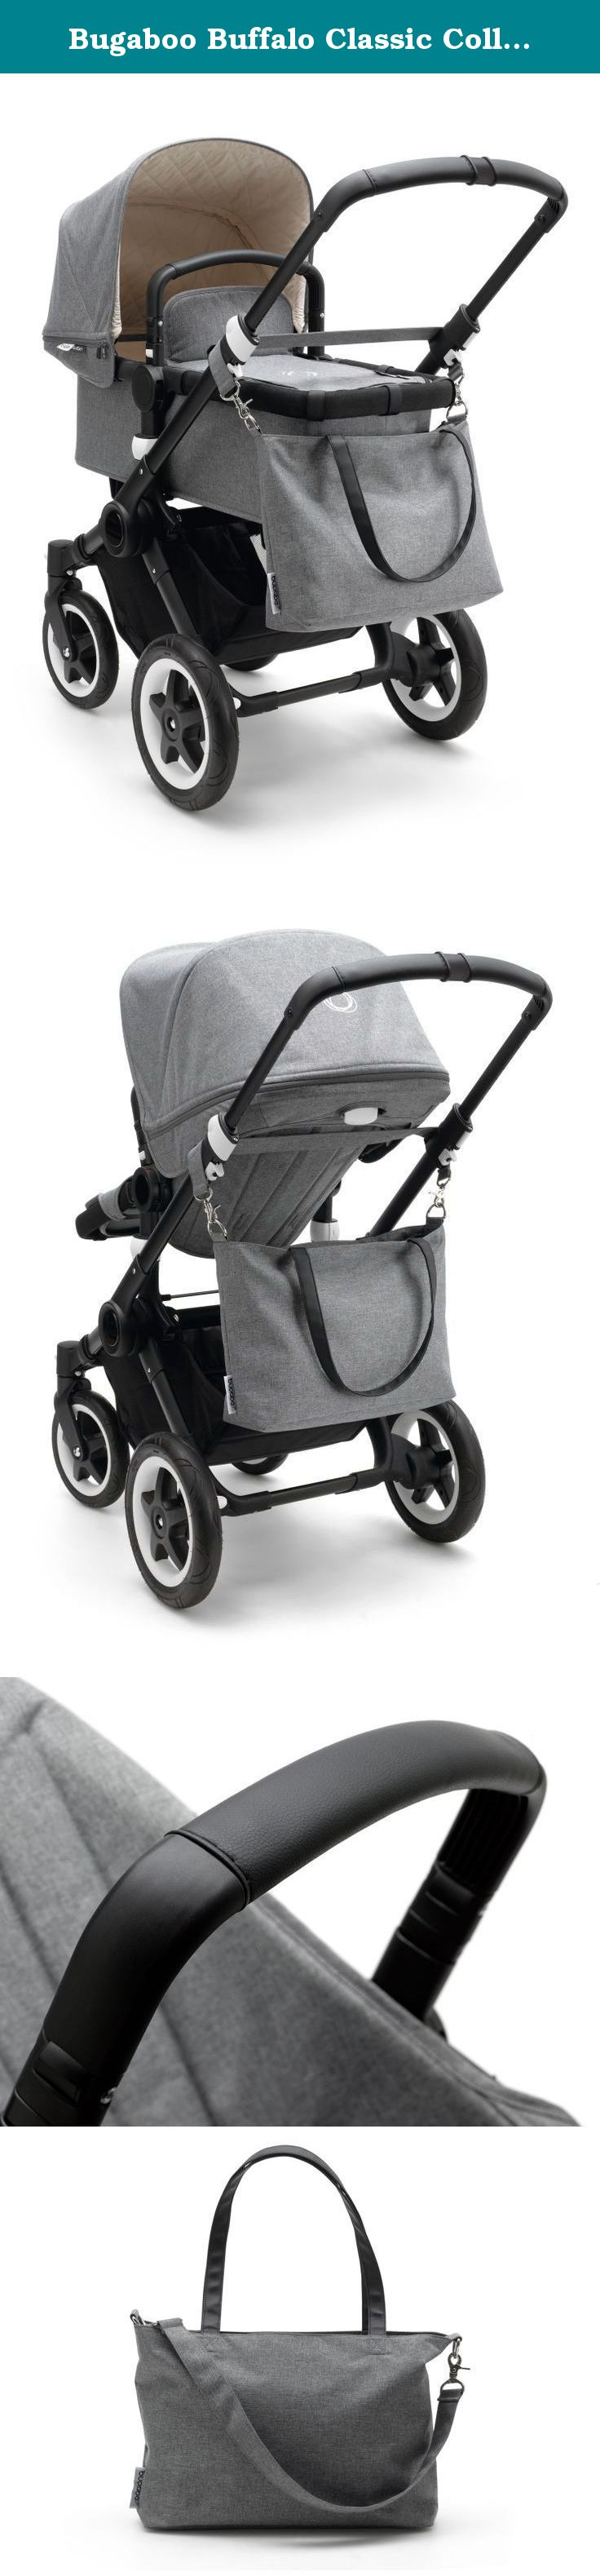 Bugaboo Buffalo Classic Collection Complete Stroller, Grey